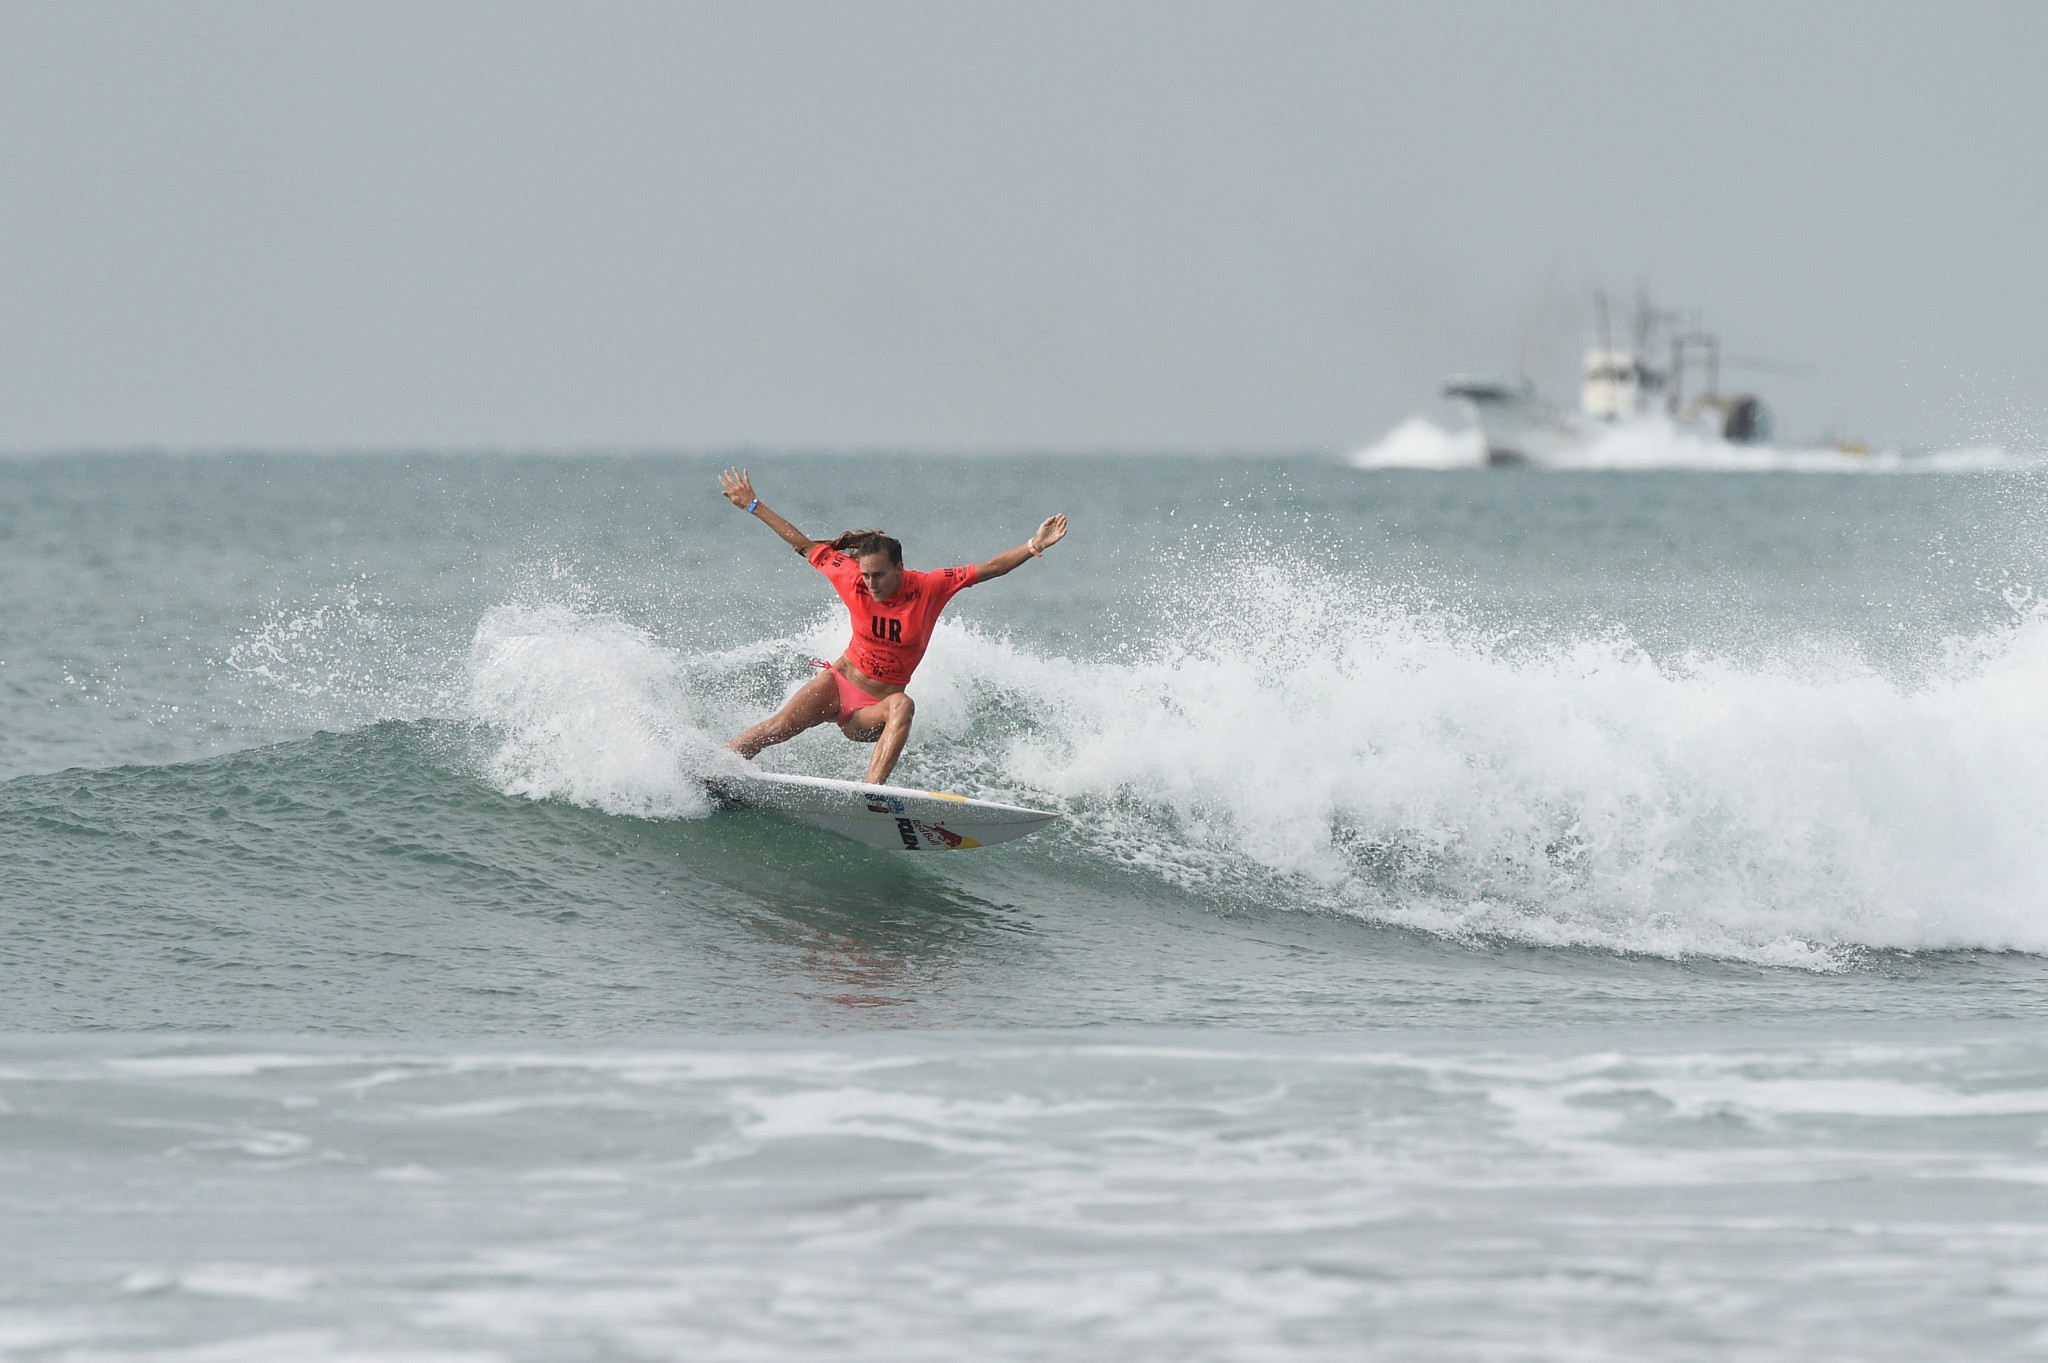 Justine Dupont competing at last month's World Surfing Games in Tahara, Japan ©Getty Images